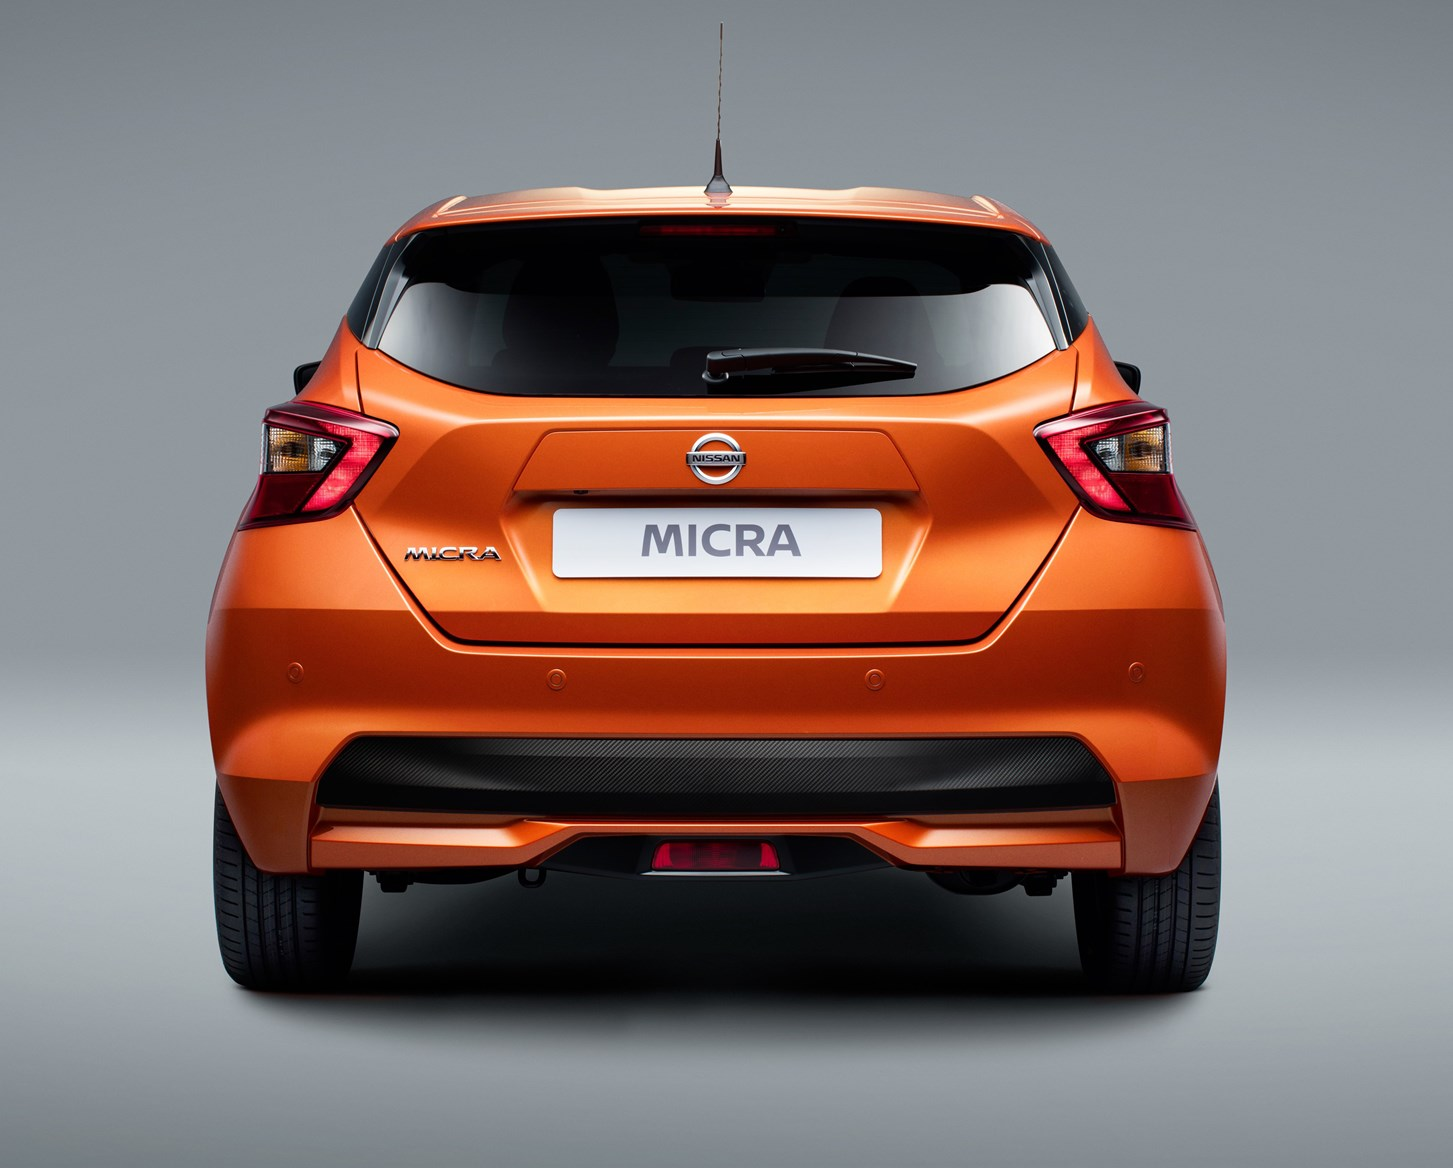 nissan micra hatchback 2017 photos parkers. Black Bedroom Furniture Sets. Home Design Ideas